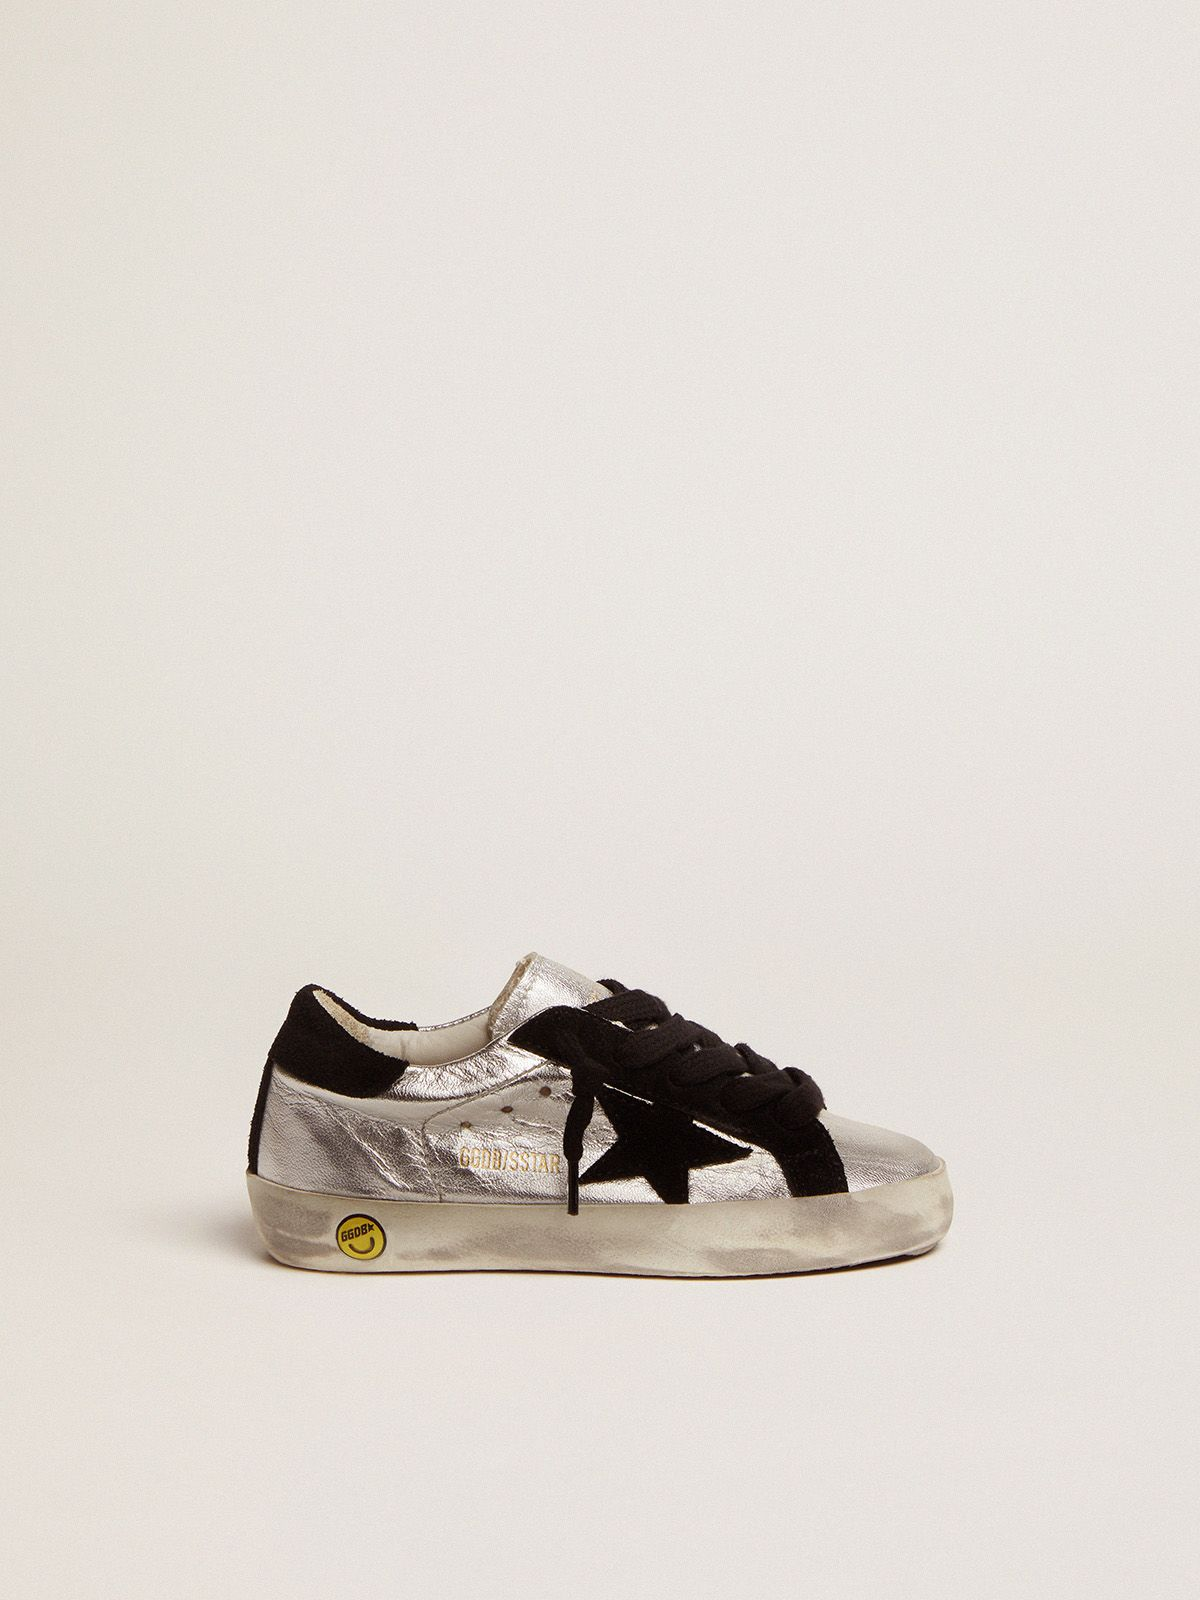 Golden Goose - Super-Star sneakers in laminated leather in